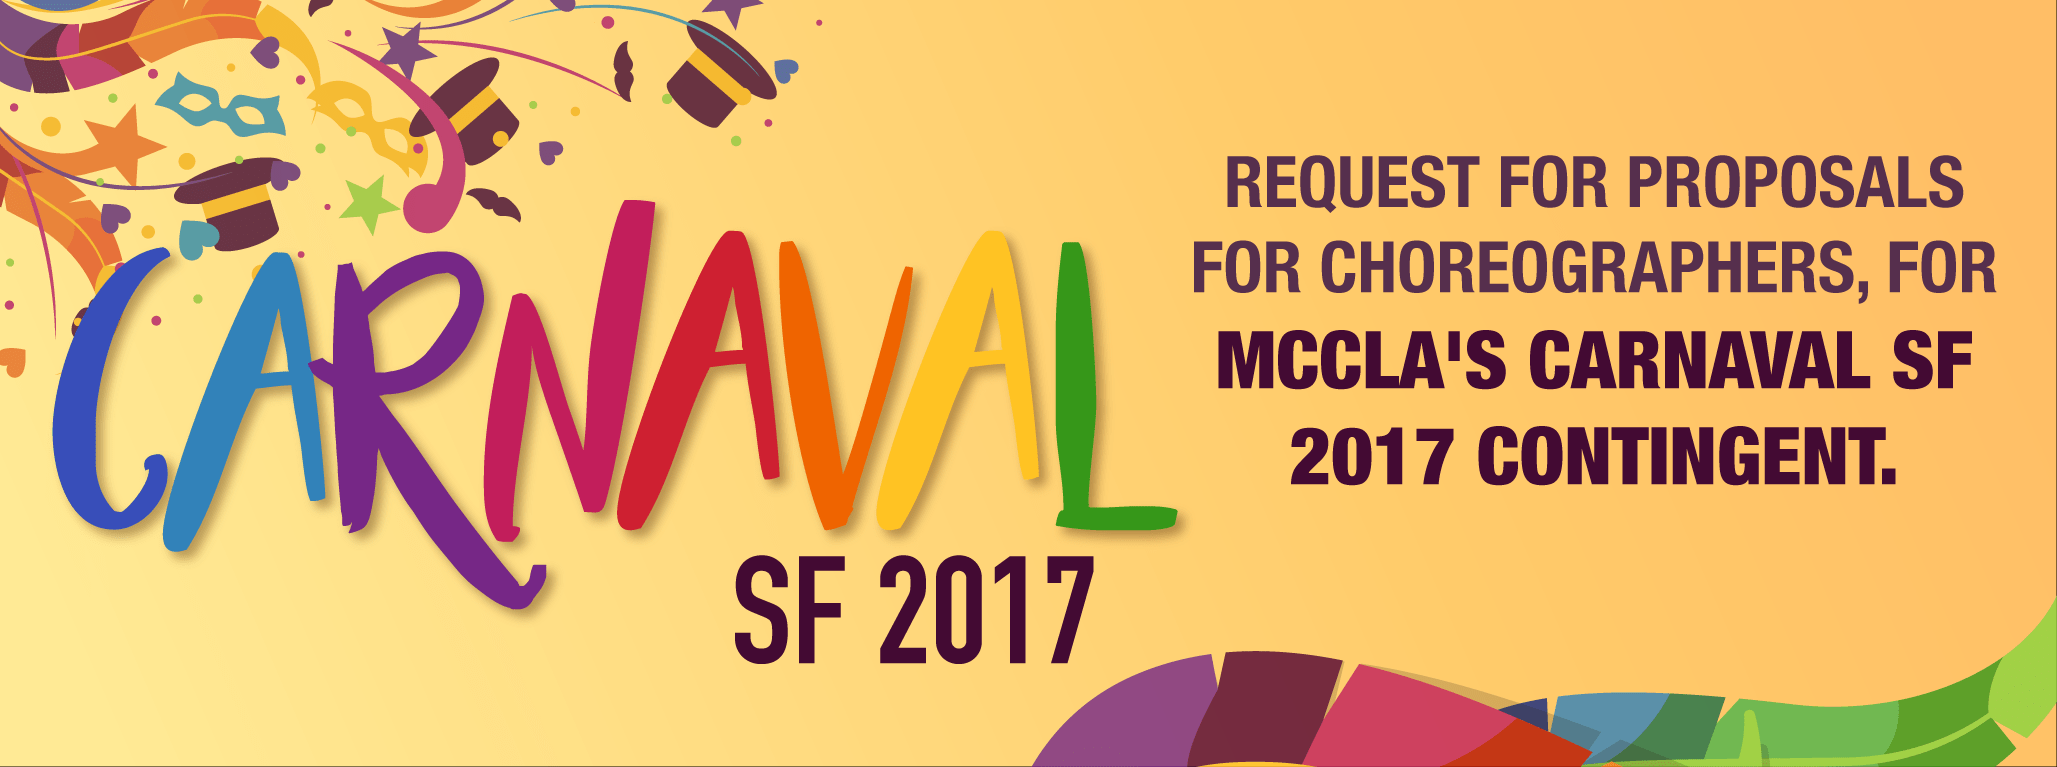 Request for Choreographer Proposals